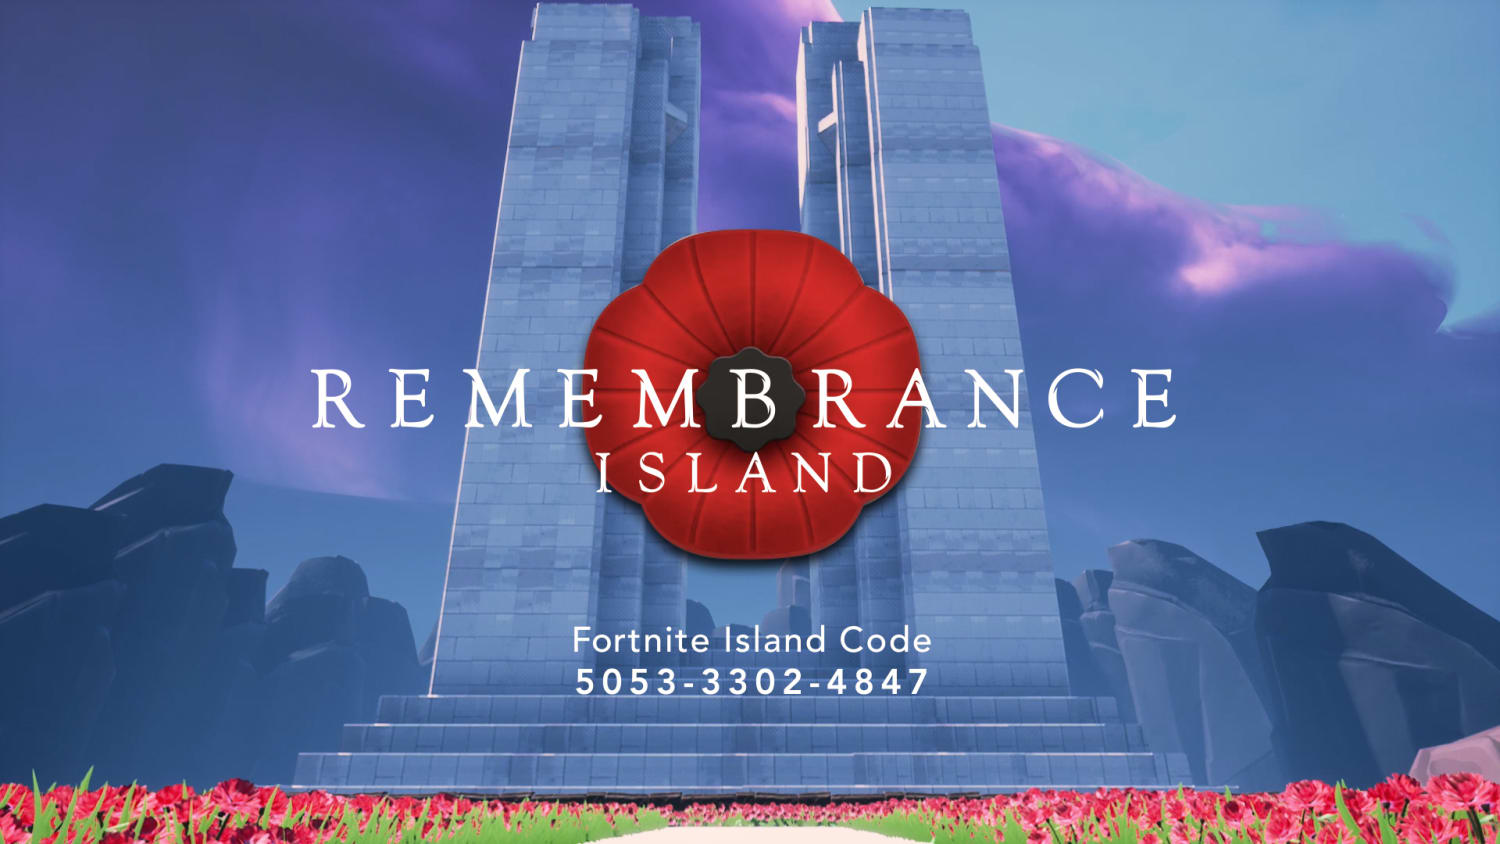 Animated image of a monument with a large poppy in the middle of it. Rememberance Island scrolled across it in white font.